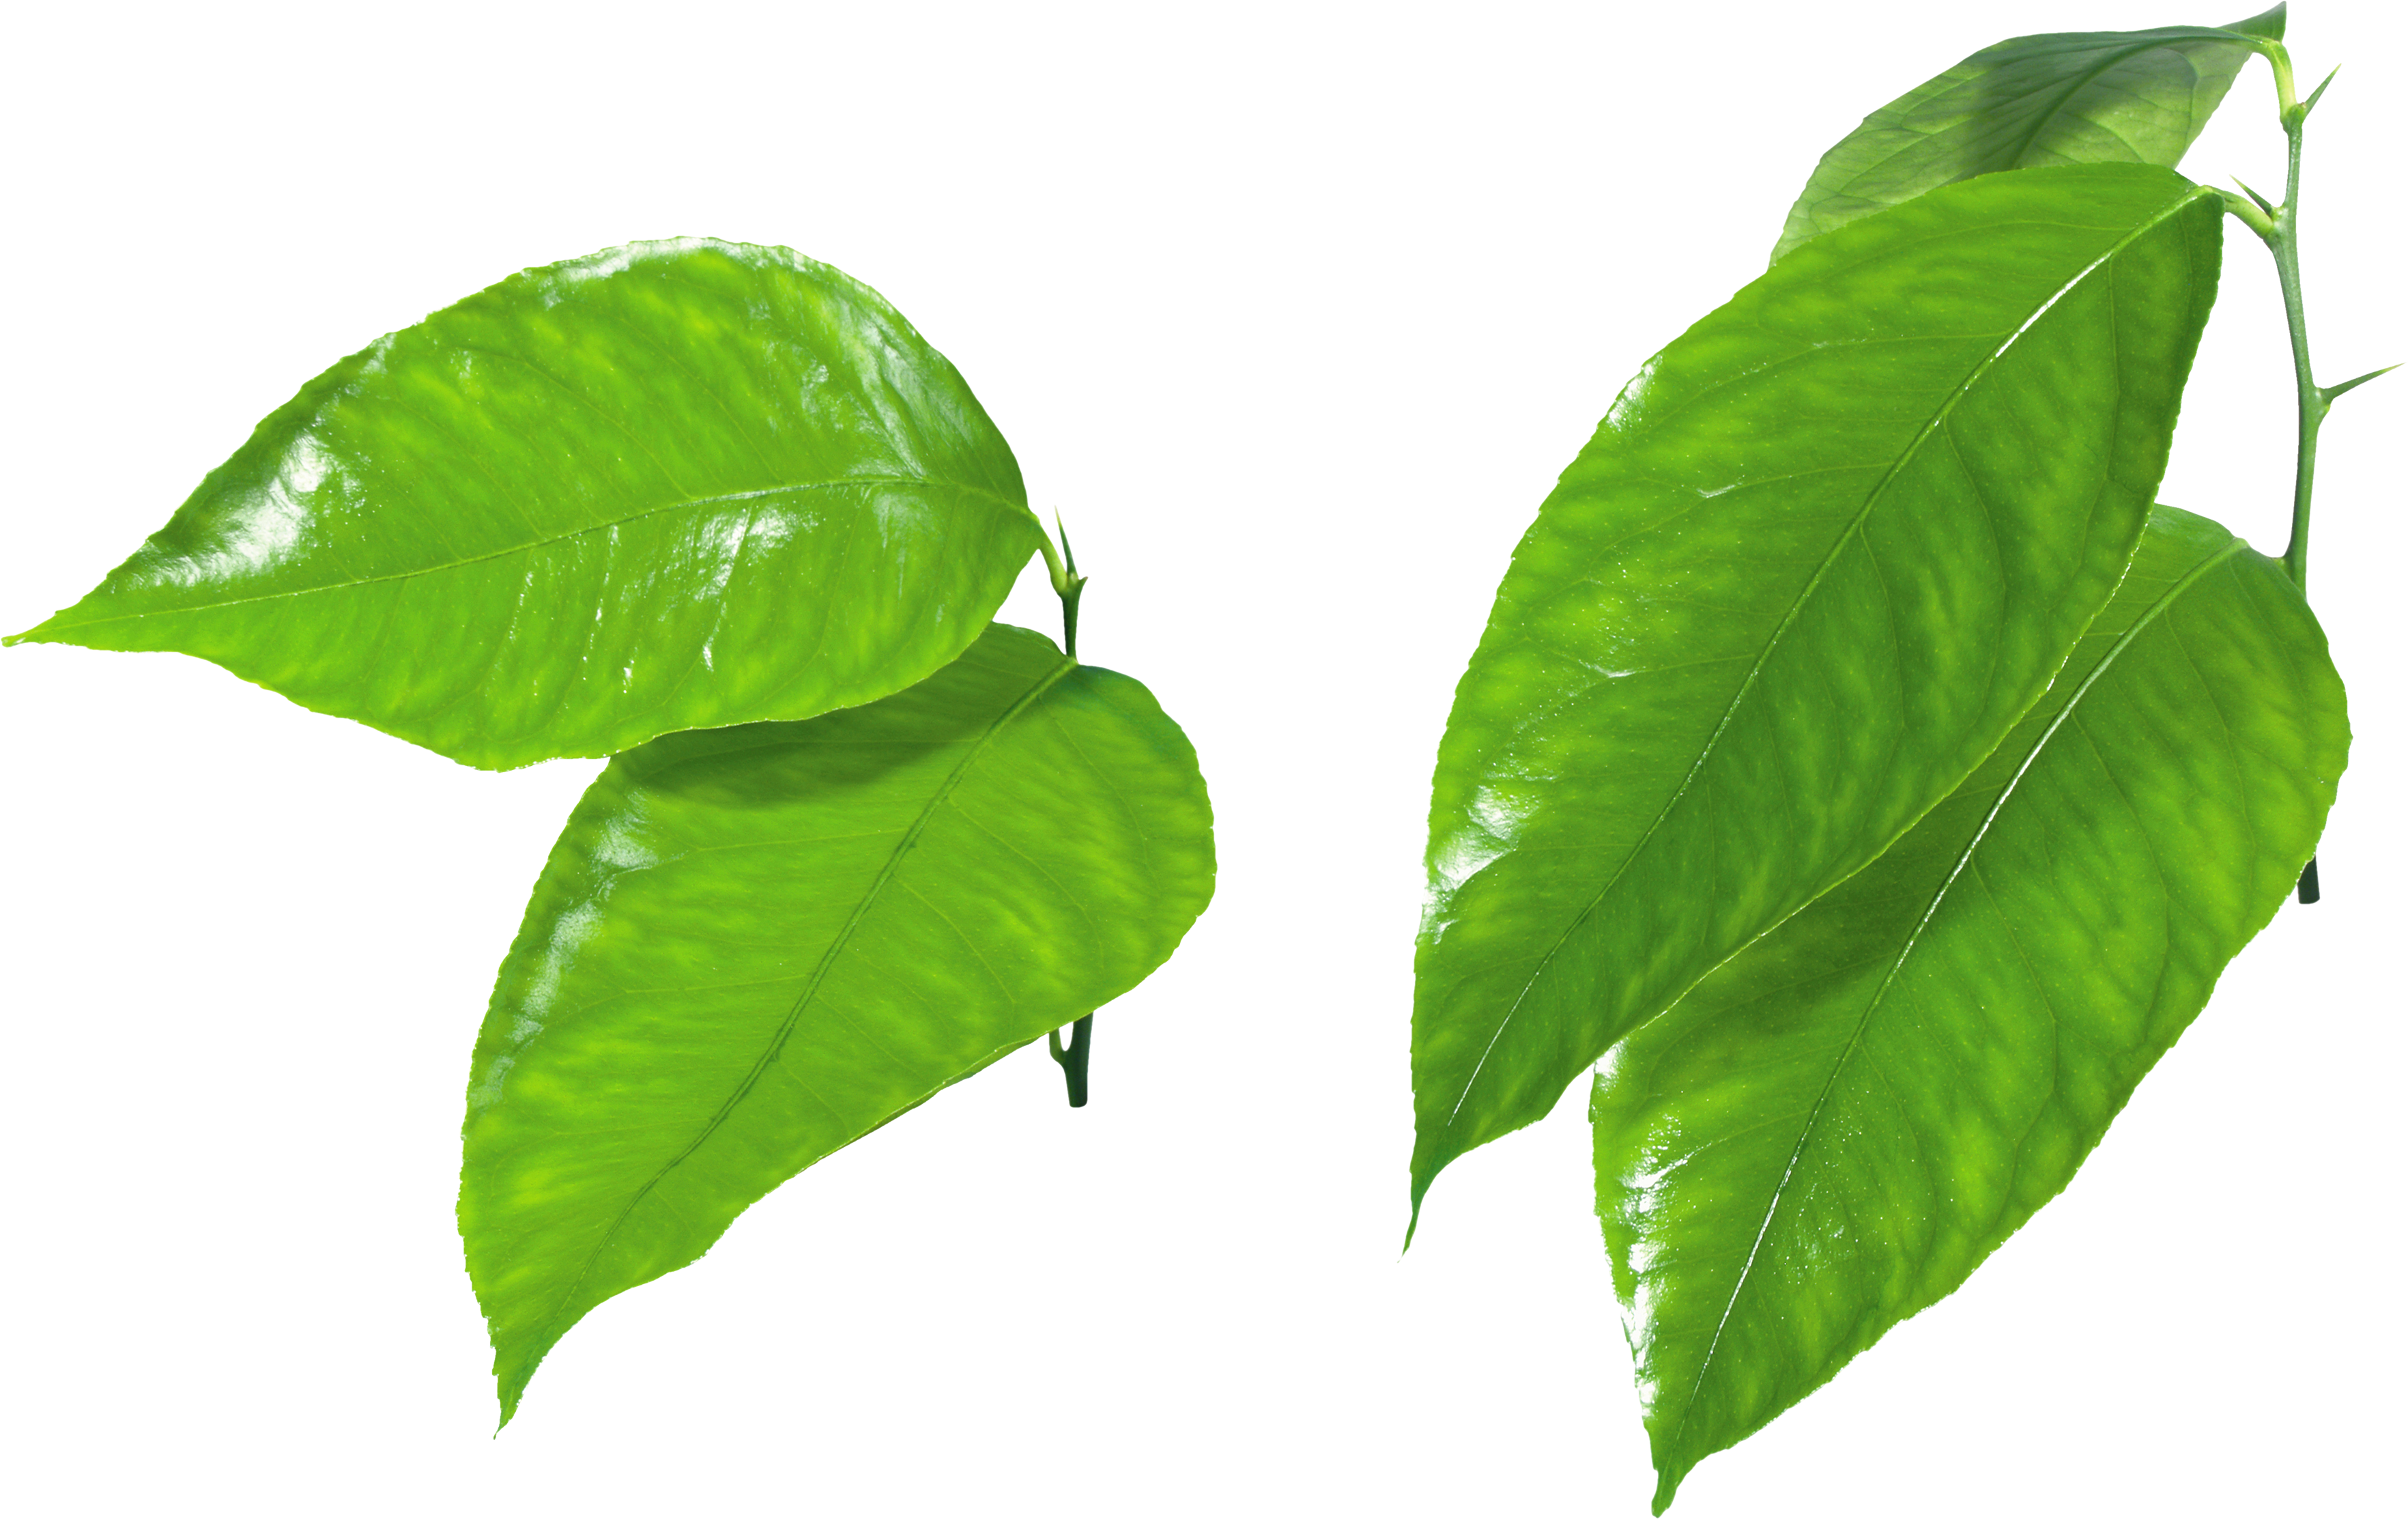 Green leaf png. Leaves images free download